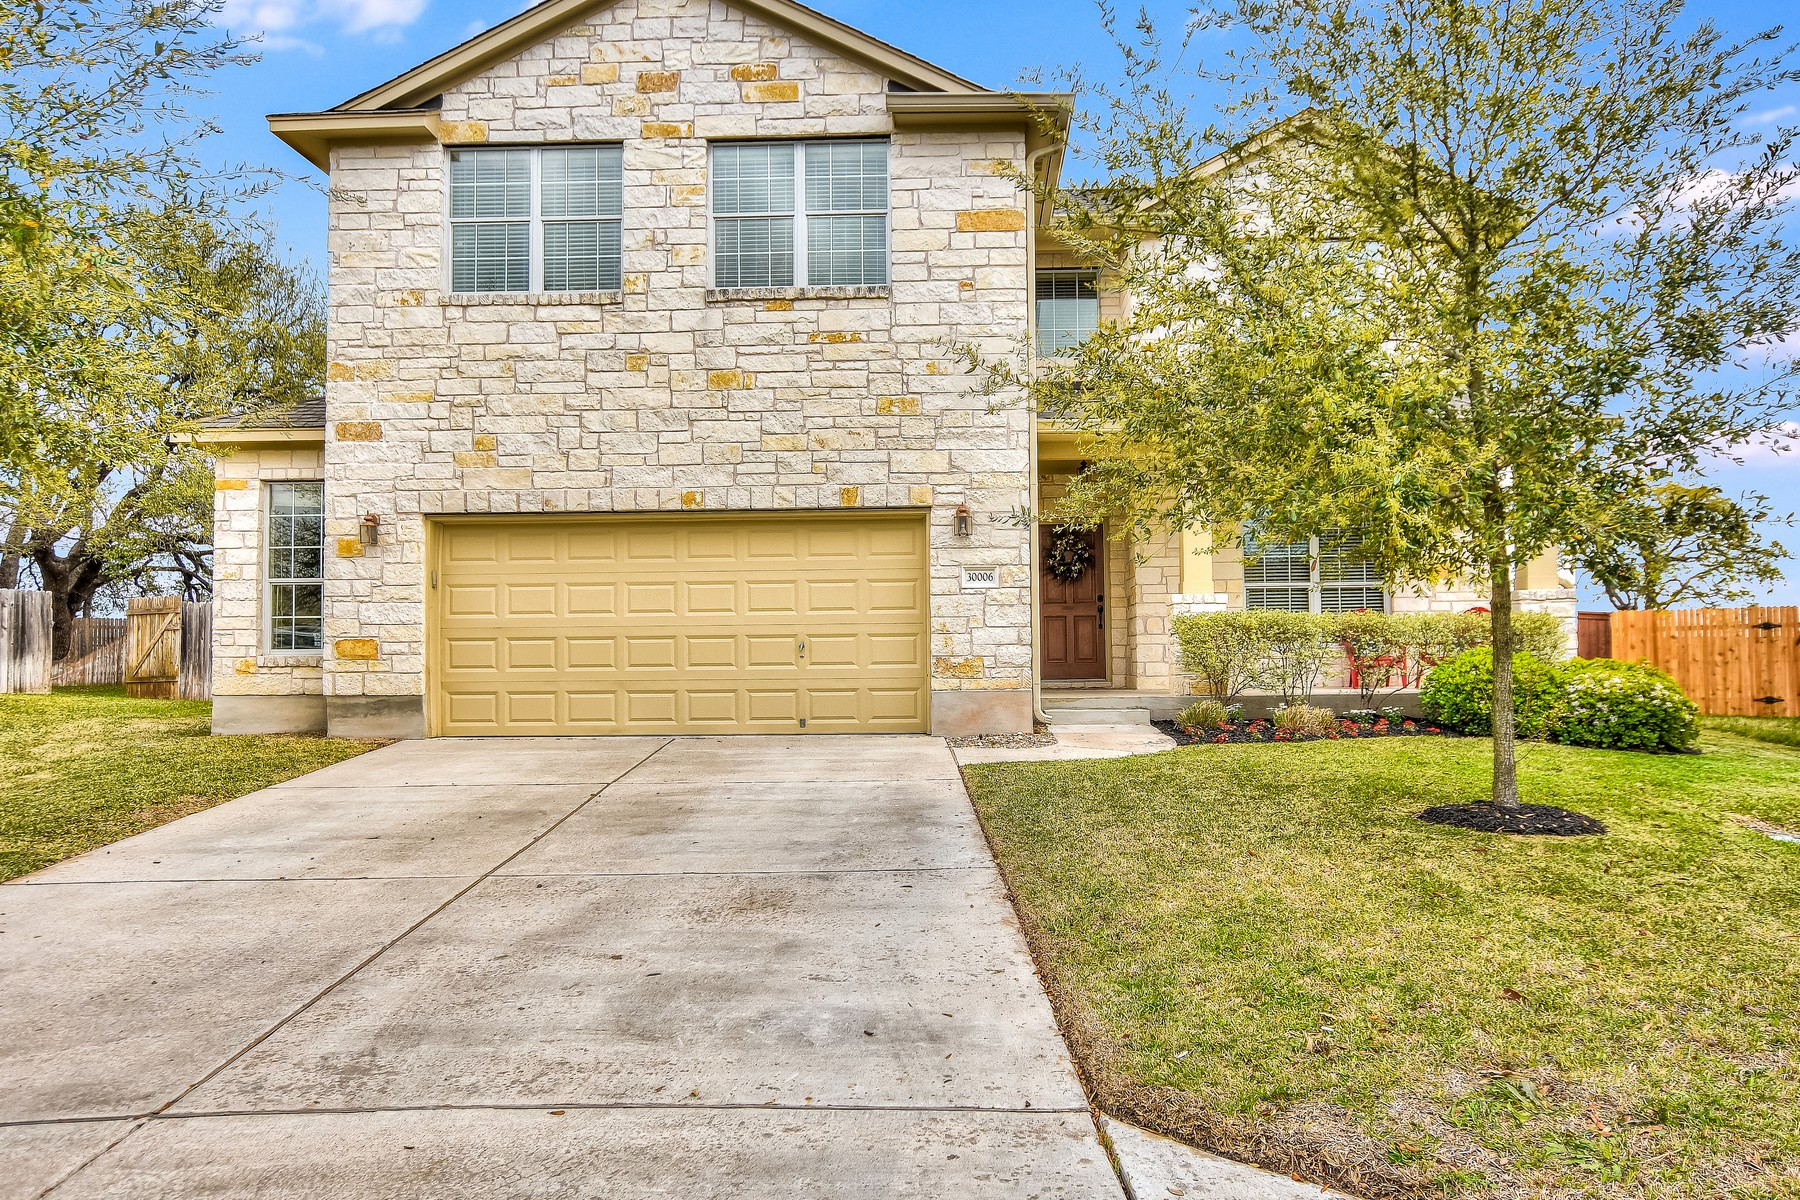 Single Family Home for Sale at Georgetown Living at its Best! 30006 Bumble Bee Dr Georgetown, Texas 78628 United States